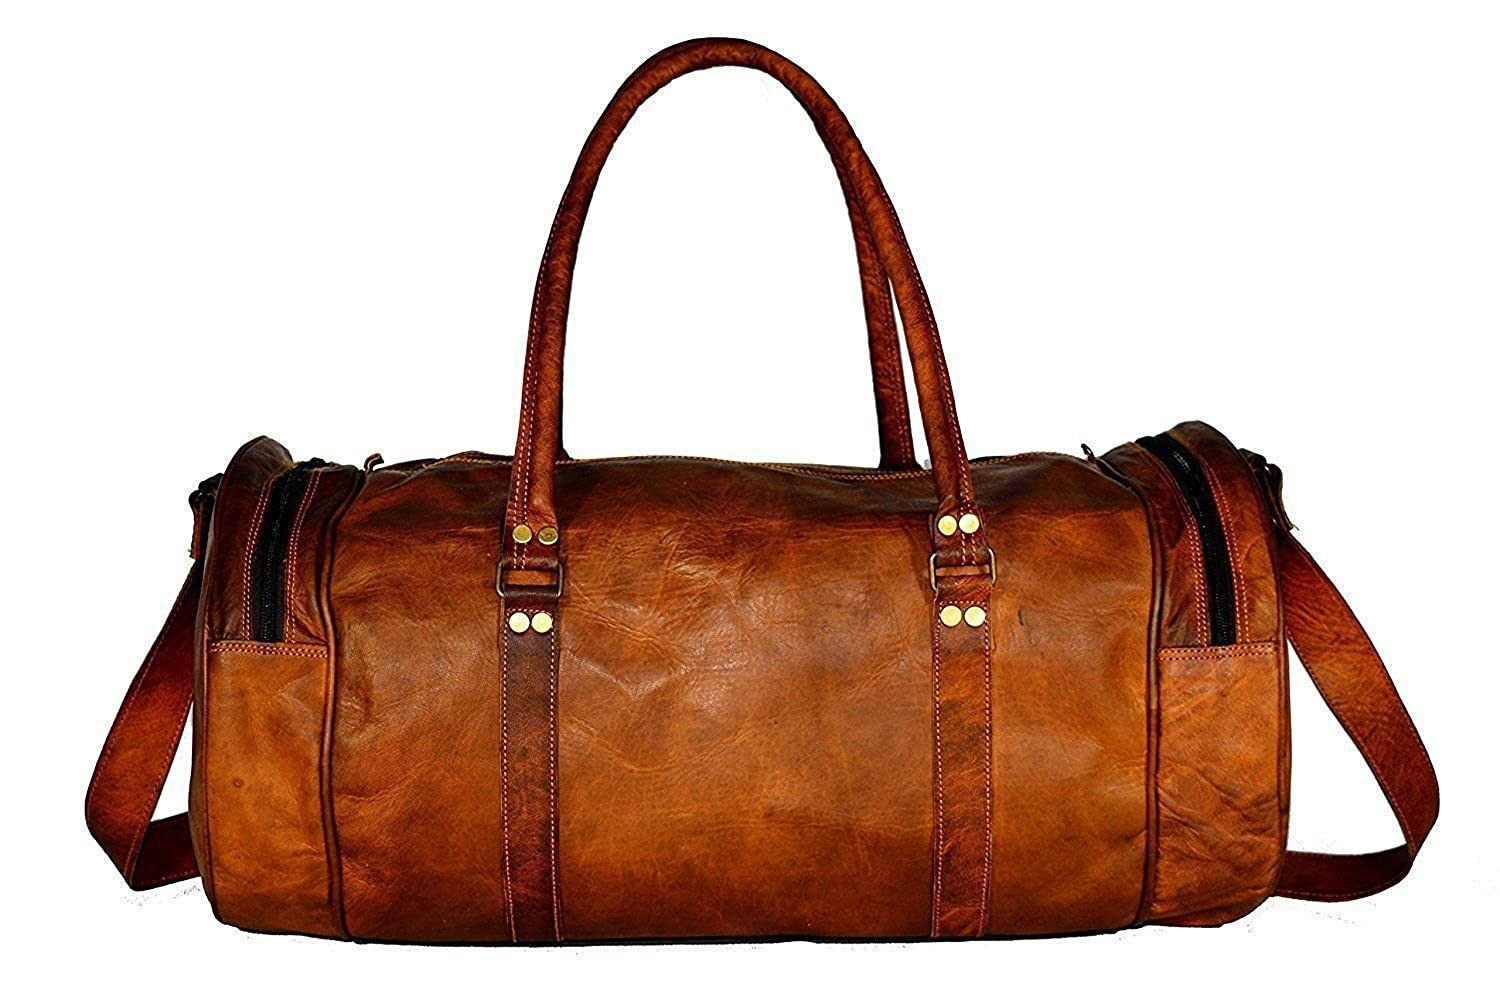 24 Inches Round Duffel Travel Duffel Gym Sports Overnight Weekend Leather Bag